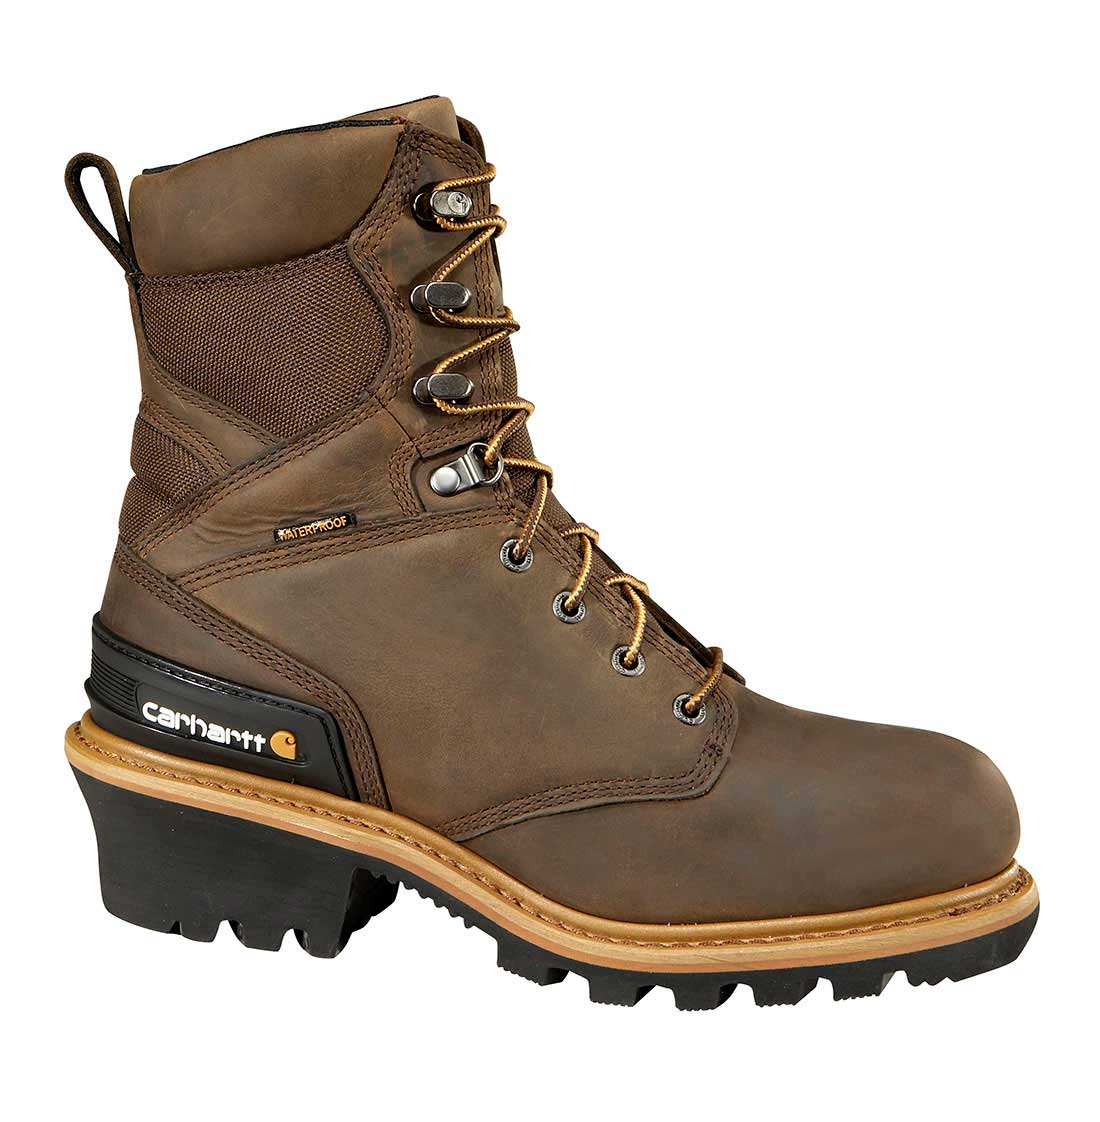 Woodworks Men's Brown Leather Waterproof Insulated Composite Safety Toe 8-inch Climbing Boot